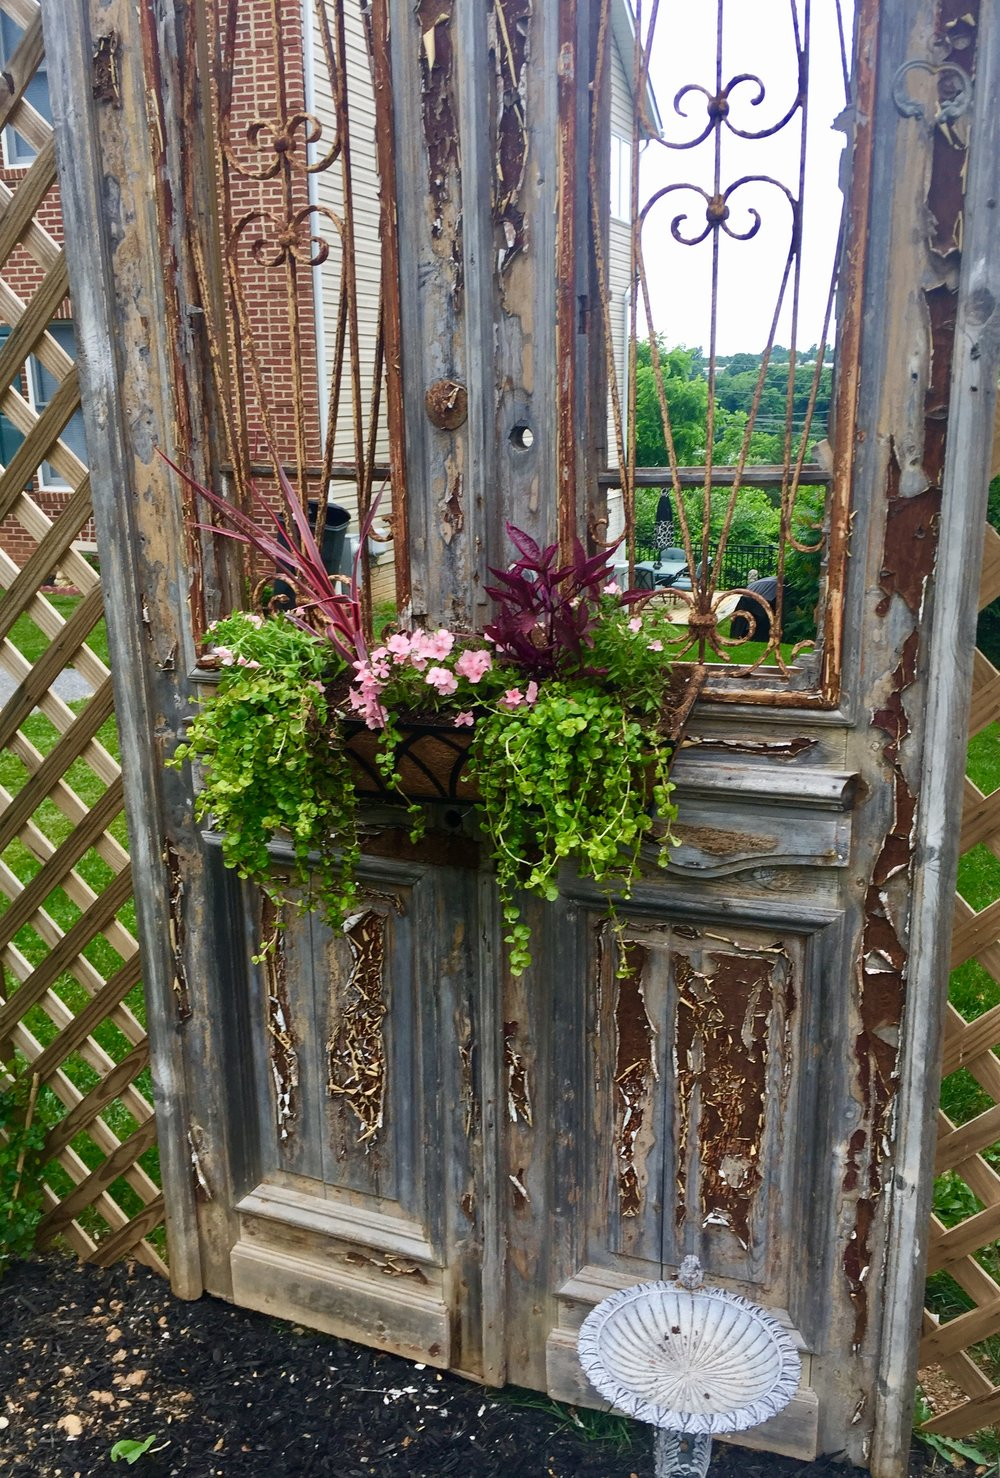 Antique door used as the backdrop for this garden.